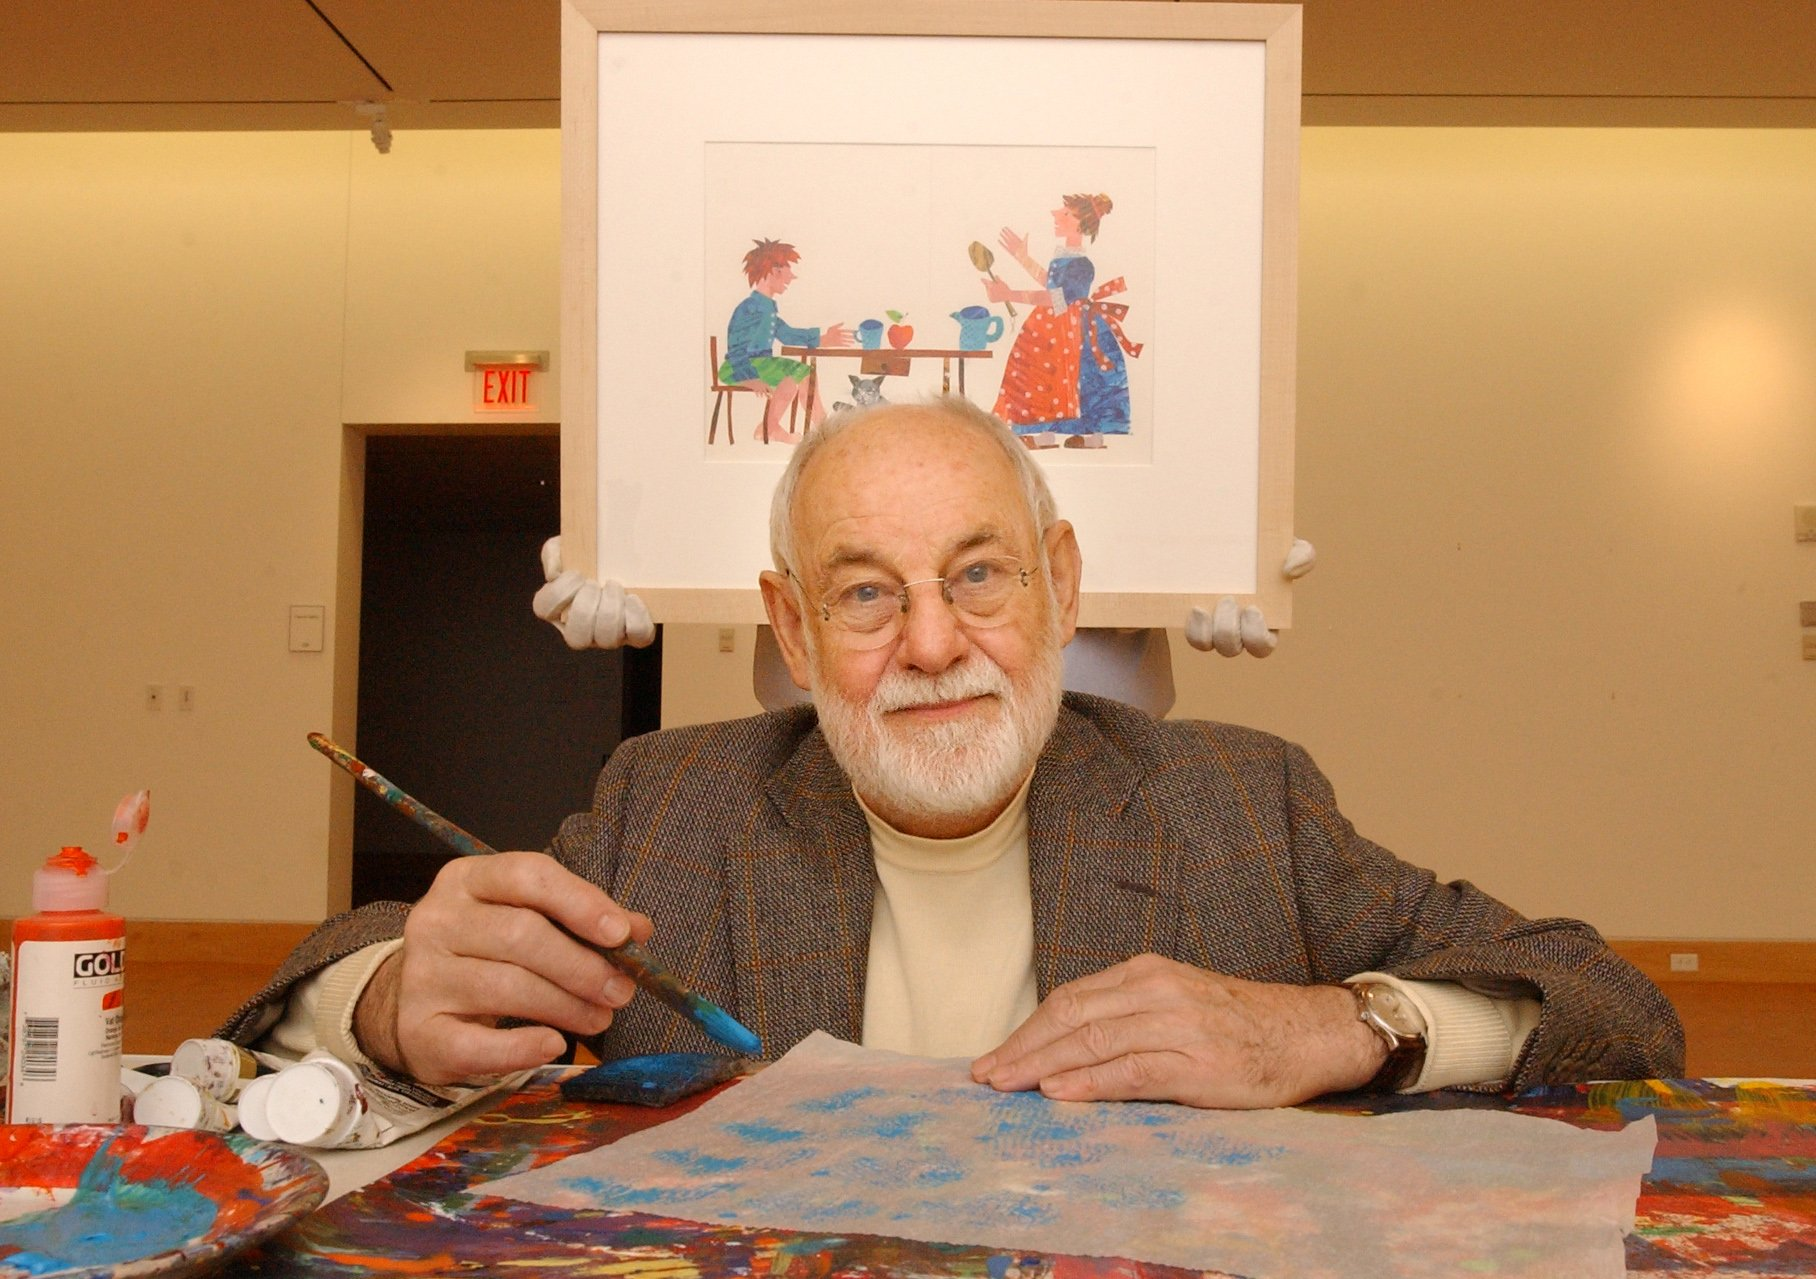 Eric Carle, author of children's books, poses in a gallery of the Eric Carle Museum | Photo: Getty Images